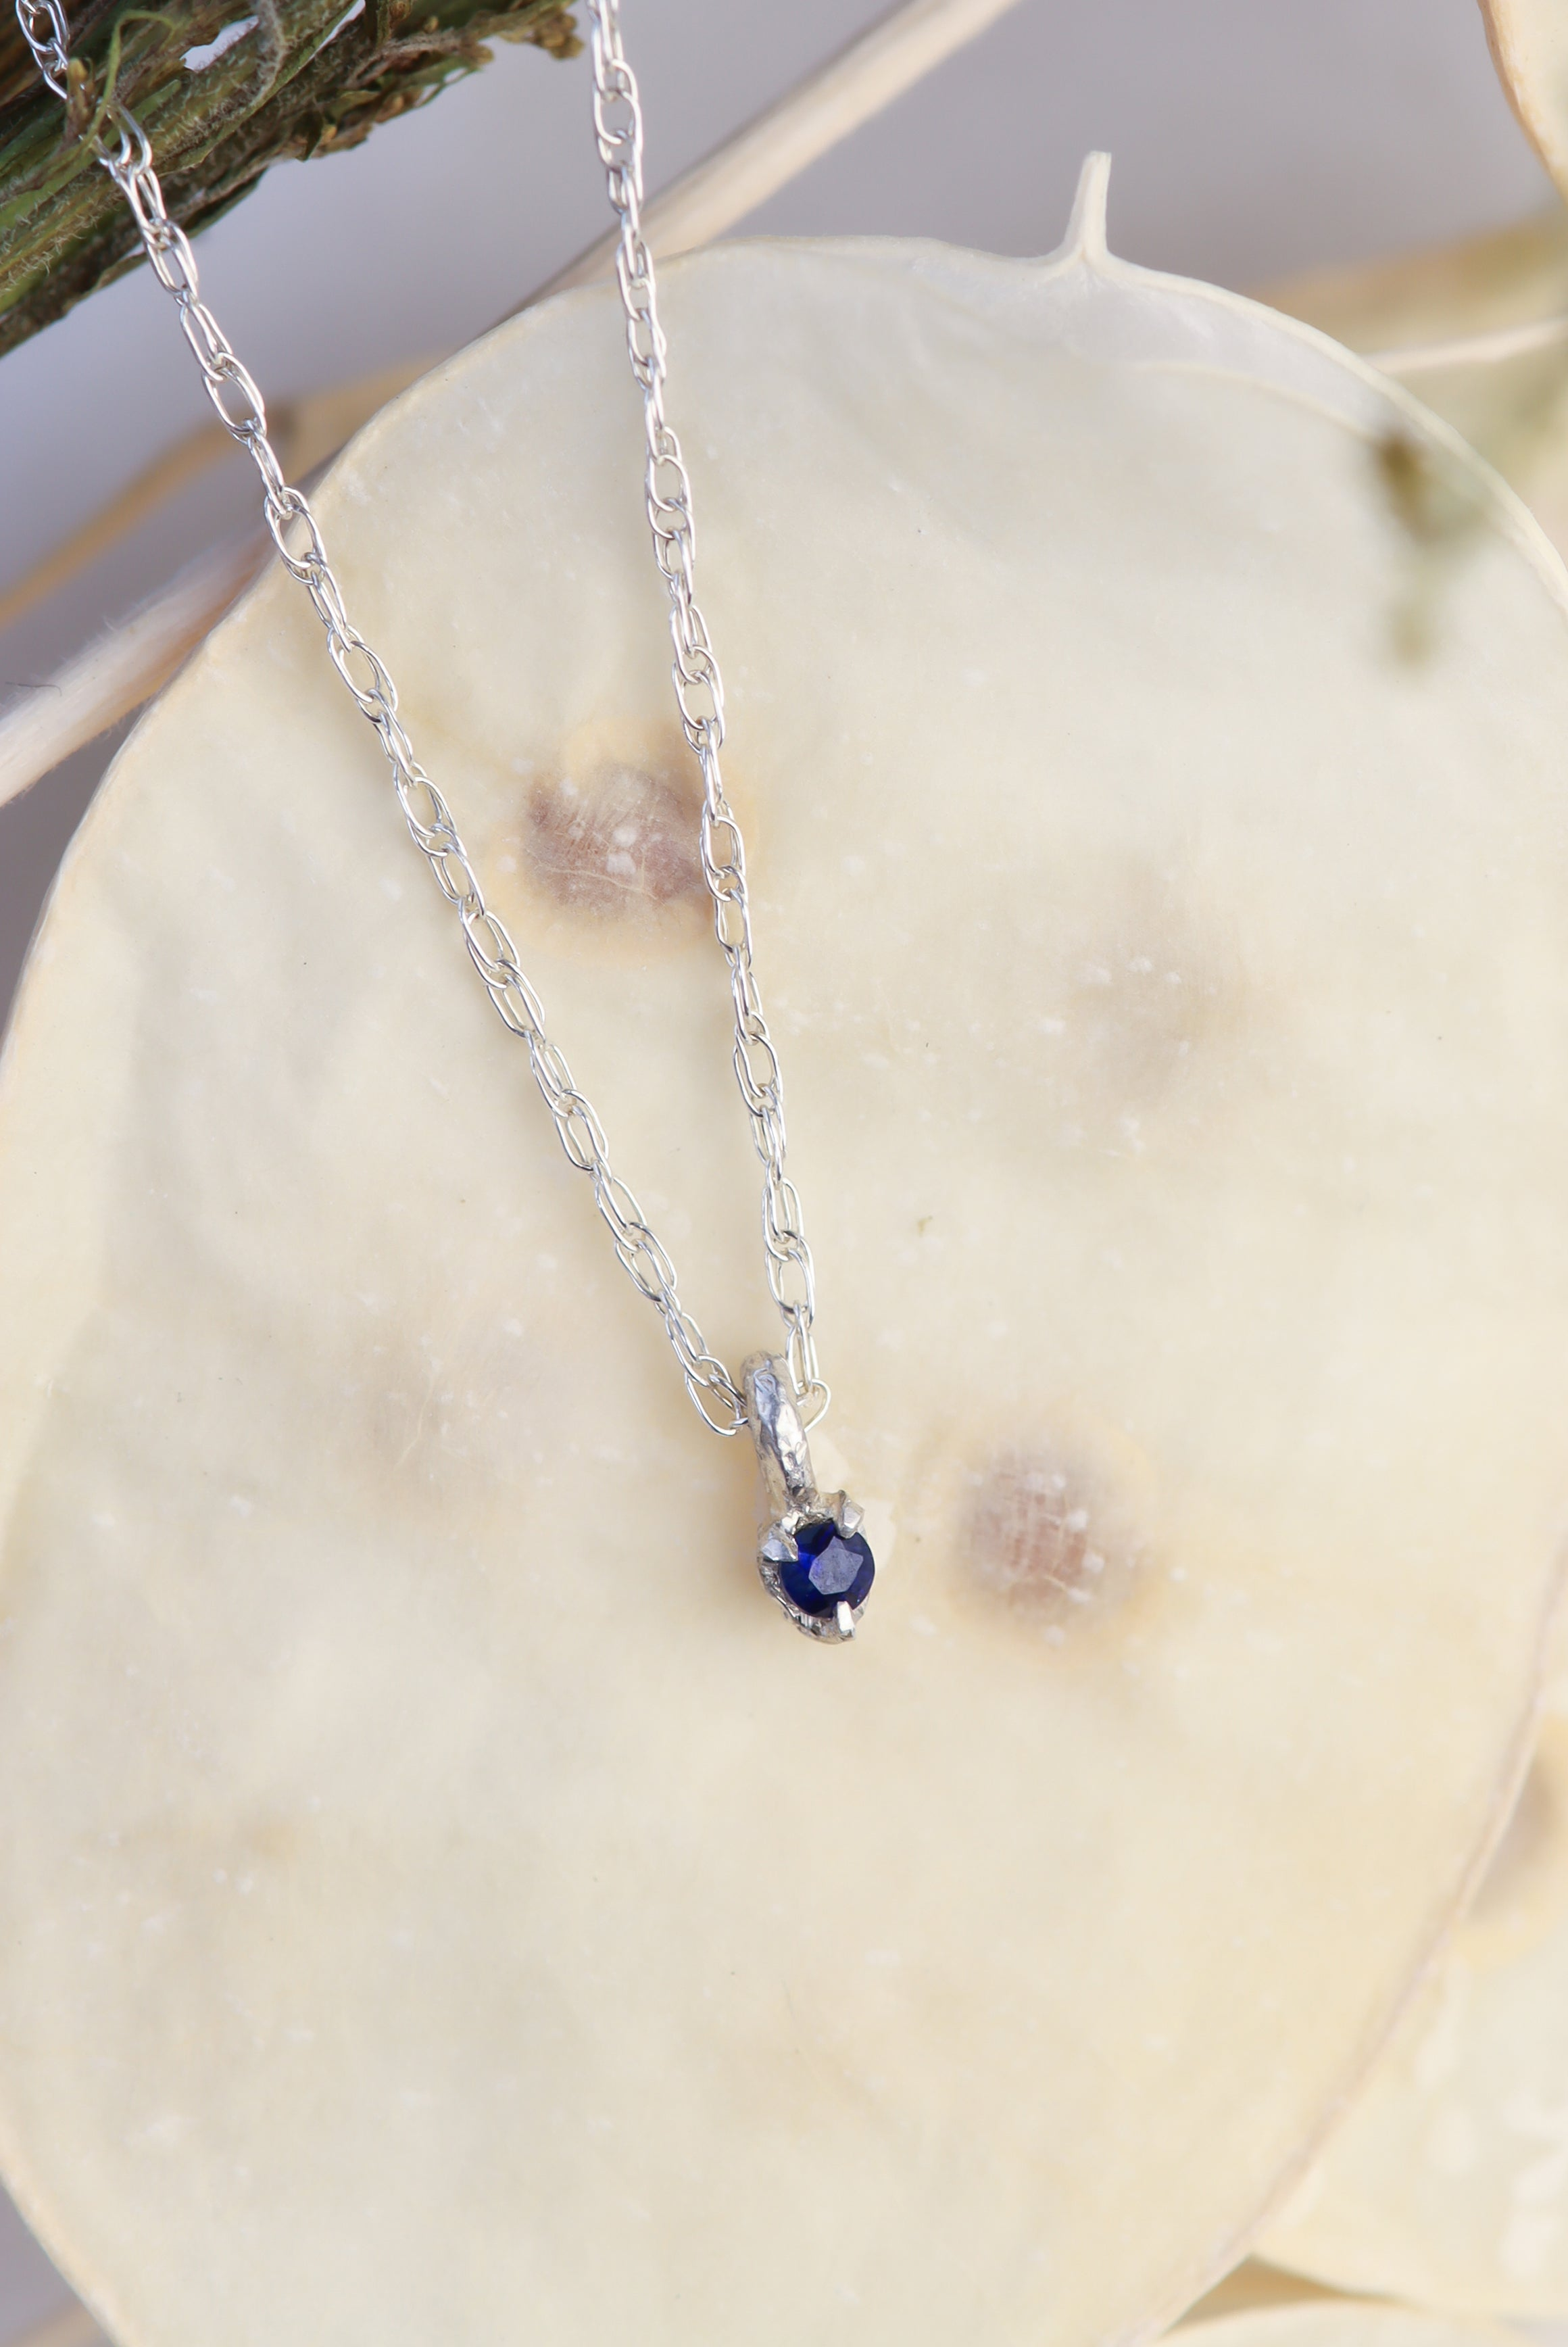 september-birthstone-sapphire-birthday-gifts-dainty-sterling-silver-sapphire-pendant-necklace